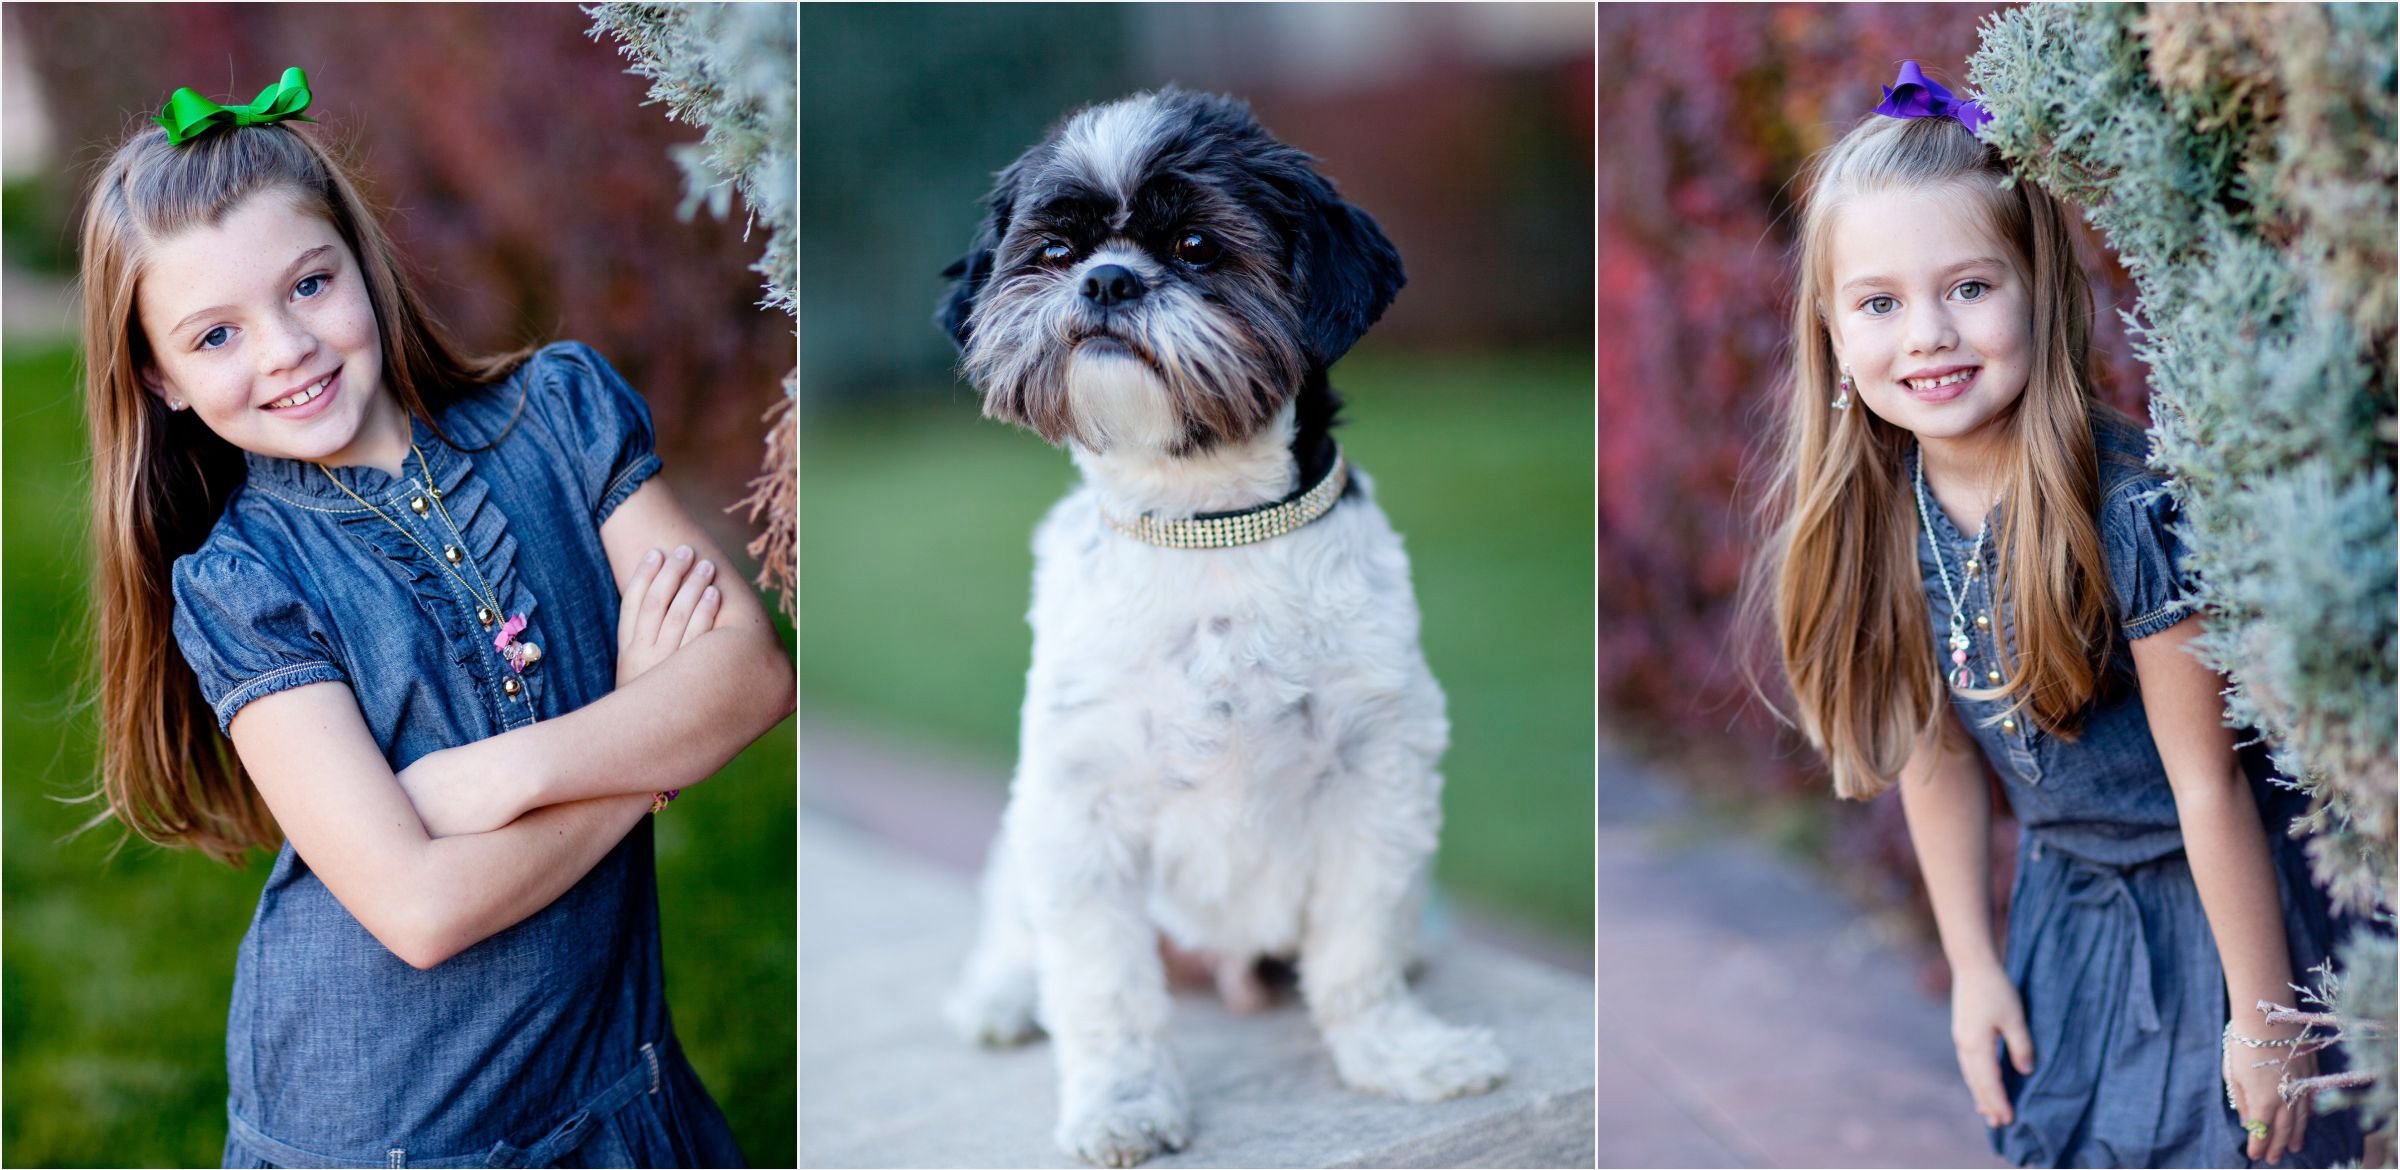 fun-sisters-and-their-dog-at-Denver-university-photo-shoot-006